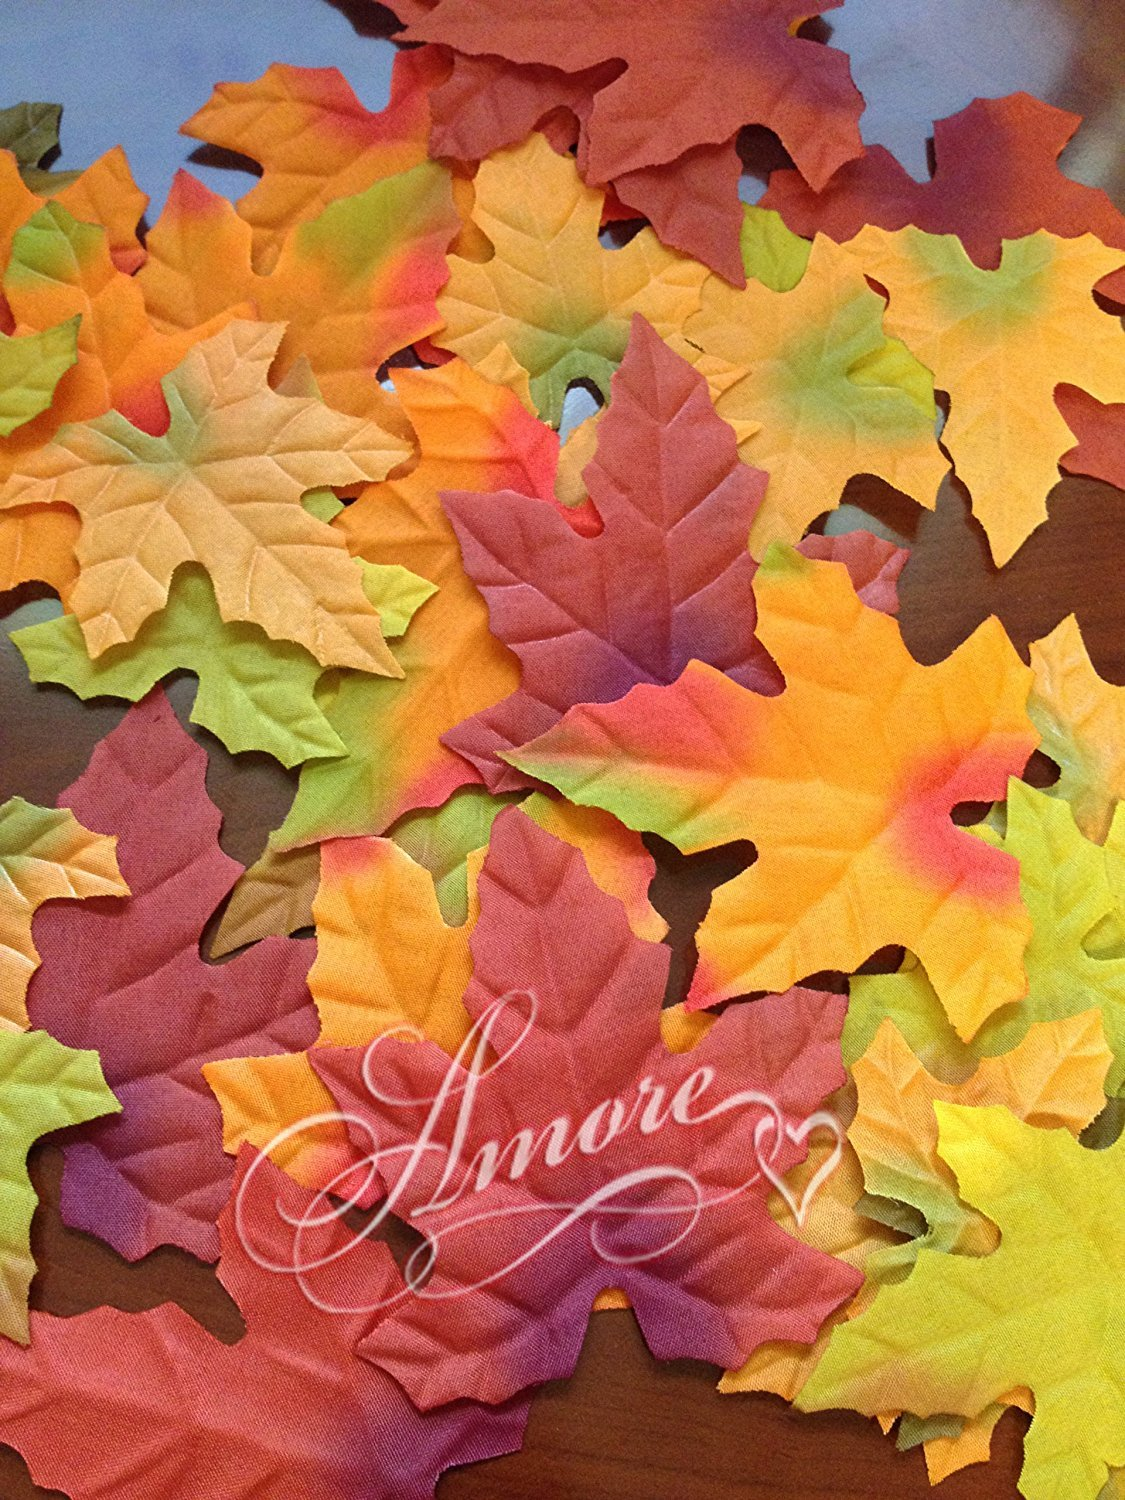 1000 Thanksgiving Halloween Wedding Artificial Fall Maple Autumn Leaves Mix Color Sizes Great Table Scatters